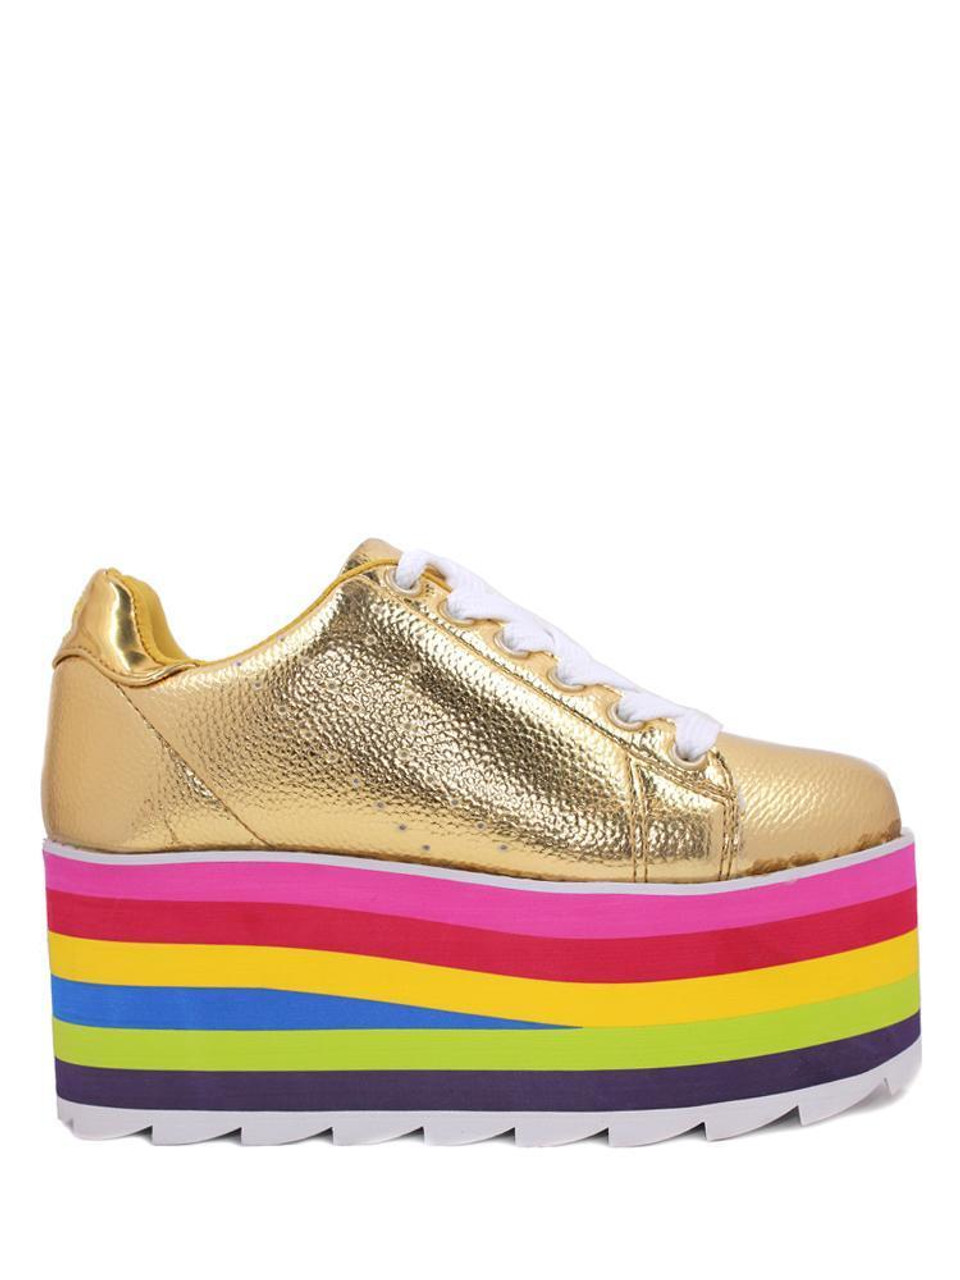 YRU Youth Rise Up Lala Gold Multi Color Rainbow Womens Platform Sneaker  Shoes